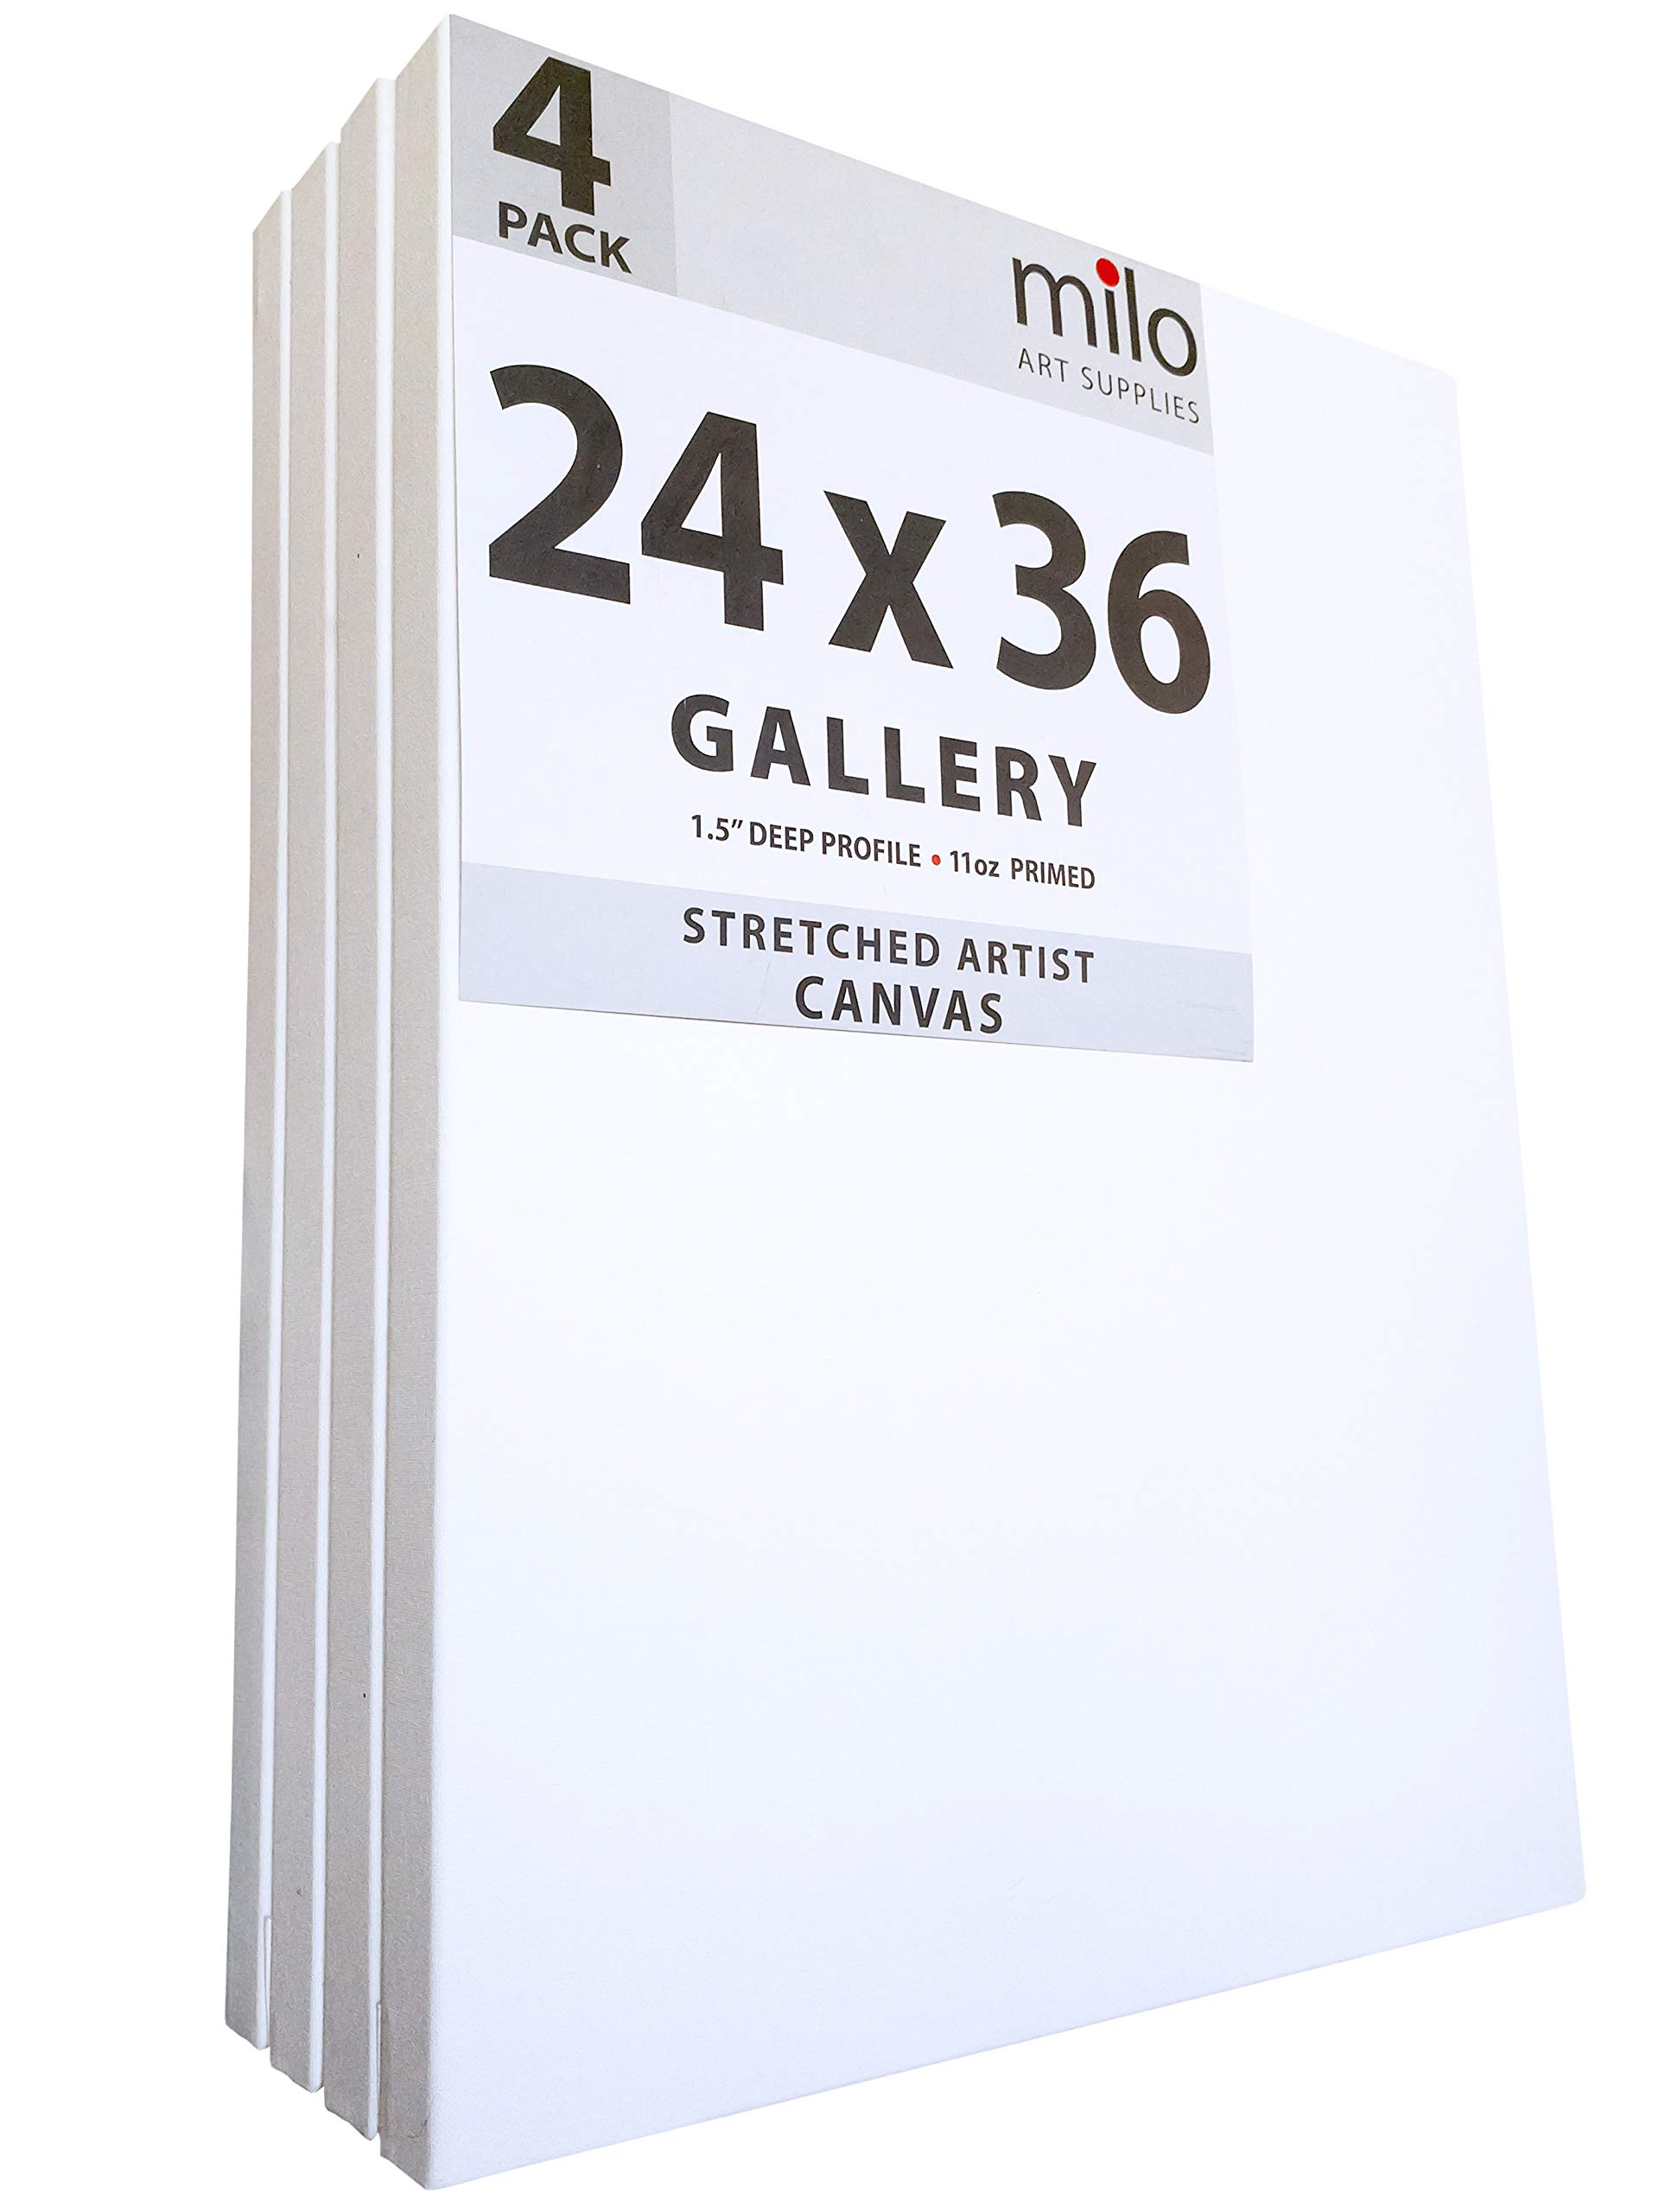 MILO PRO | 24 x 36'' Stretched Canvas Pack of 4 | 1.5'' inch Deep Gallery Profile | 11 oz Primed Large Professional Artist Painting Canvases | Ready to Paint White Blank Art Canvas Bulk Set by milo